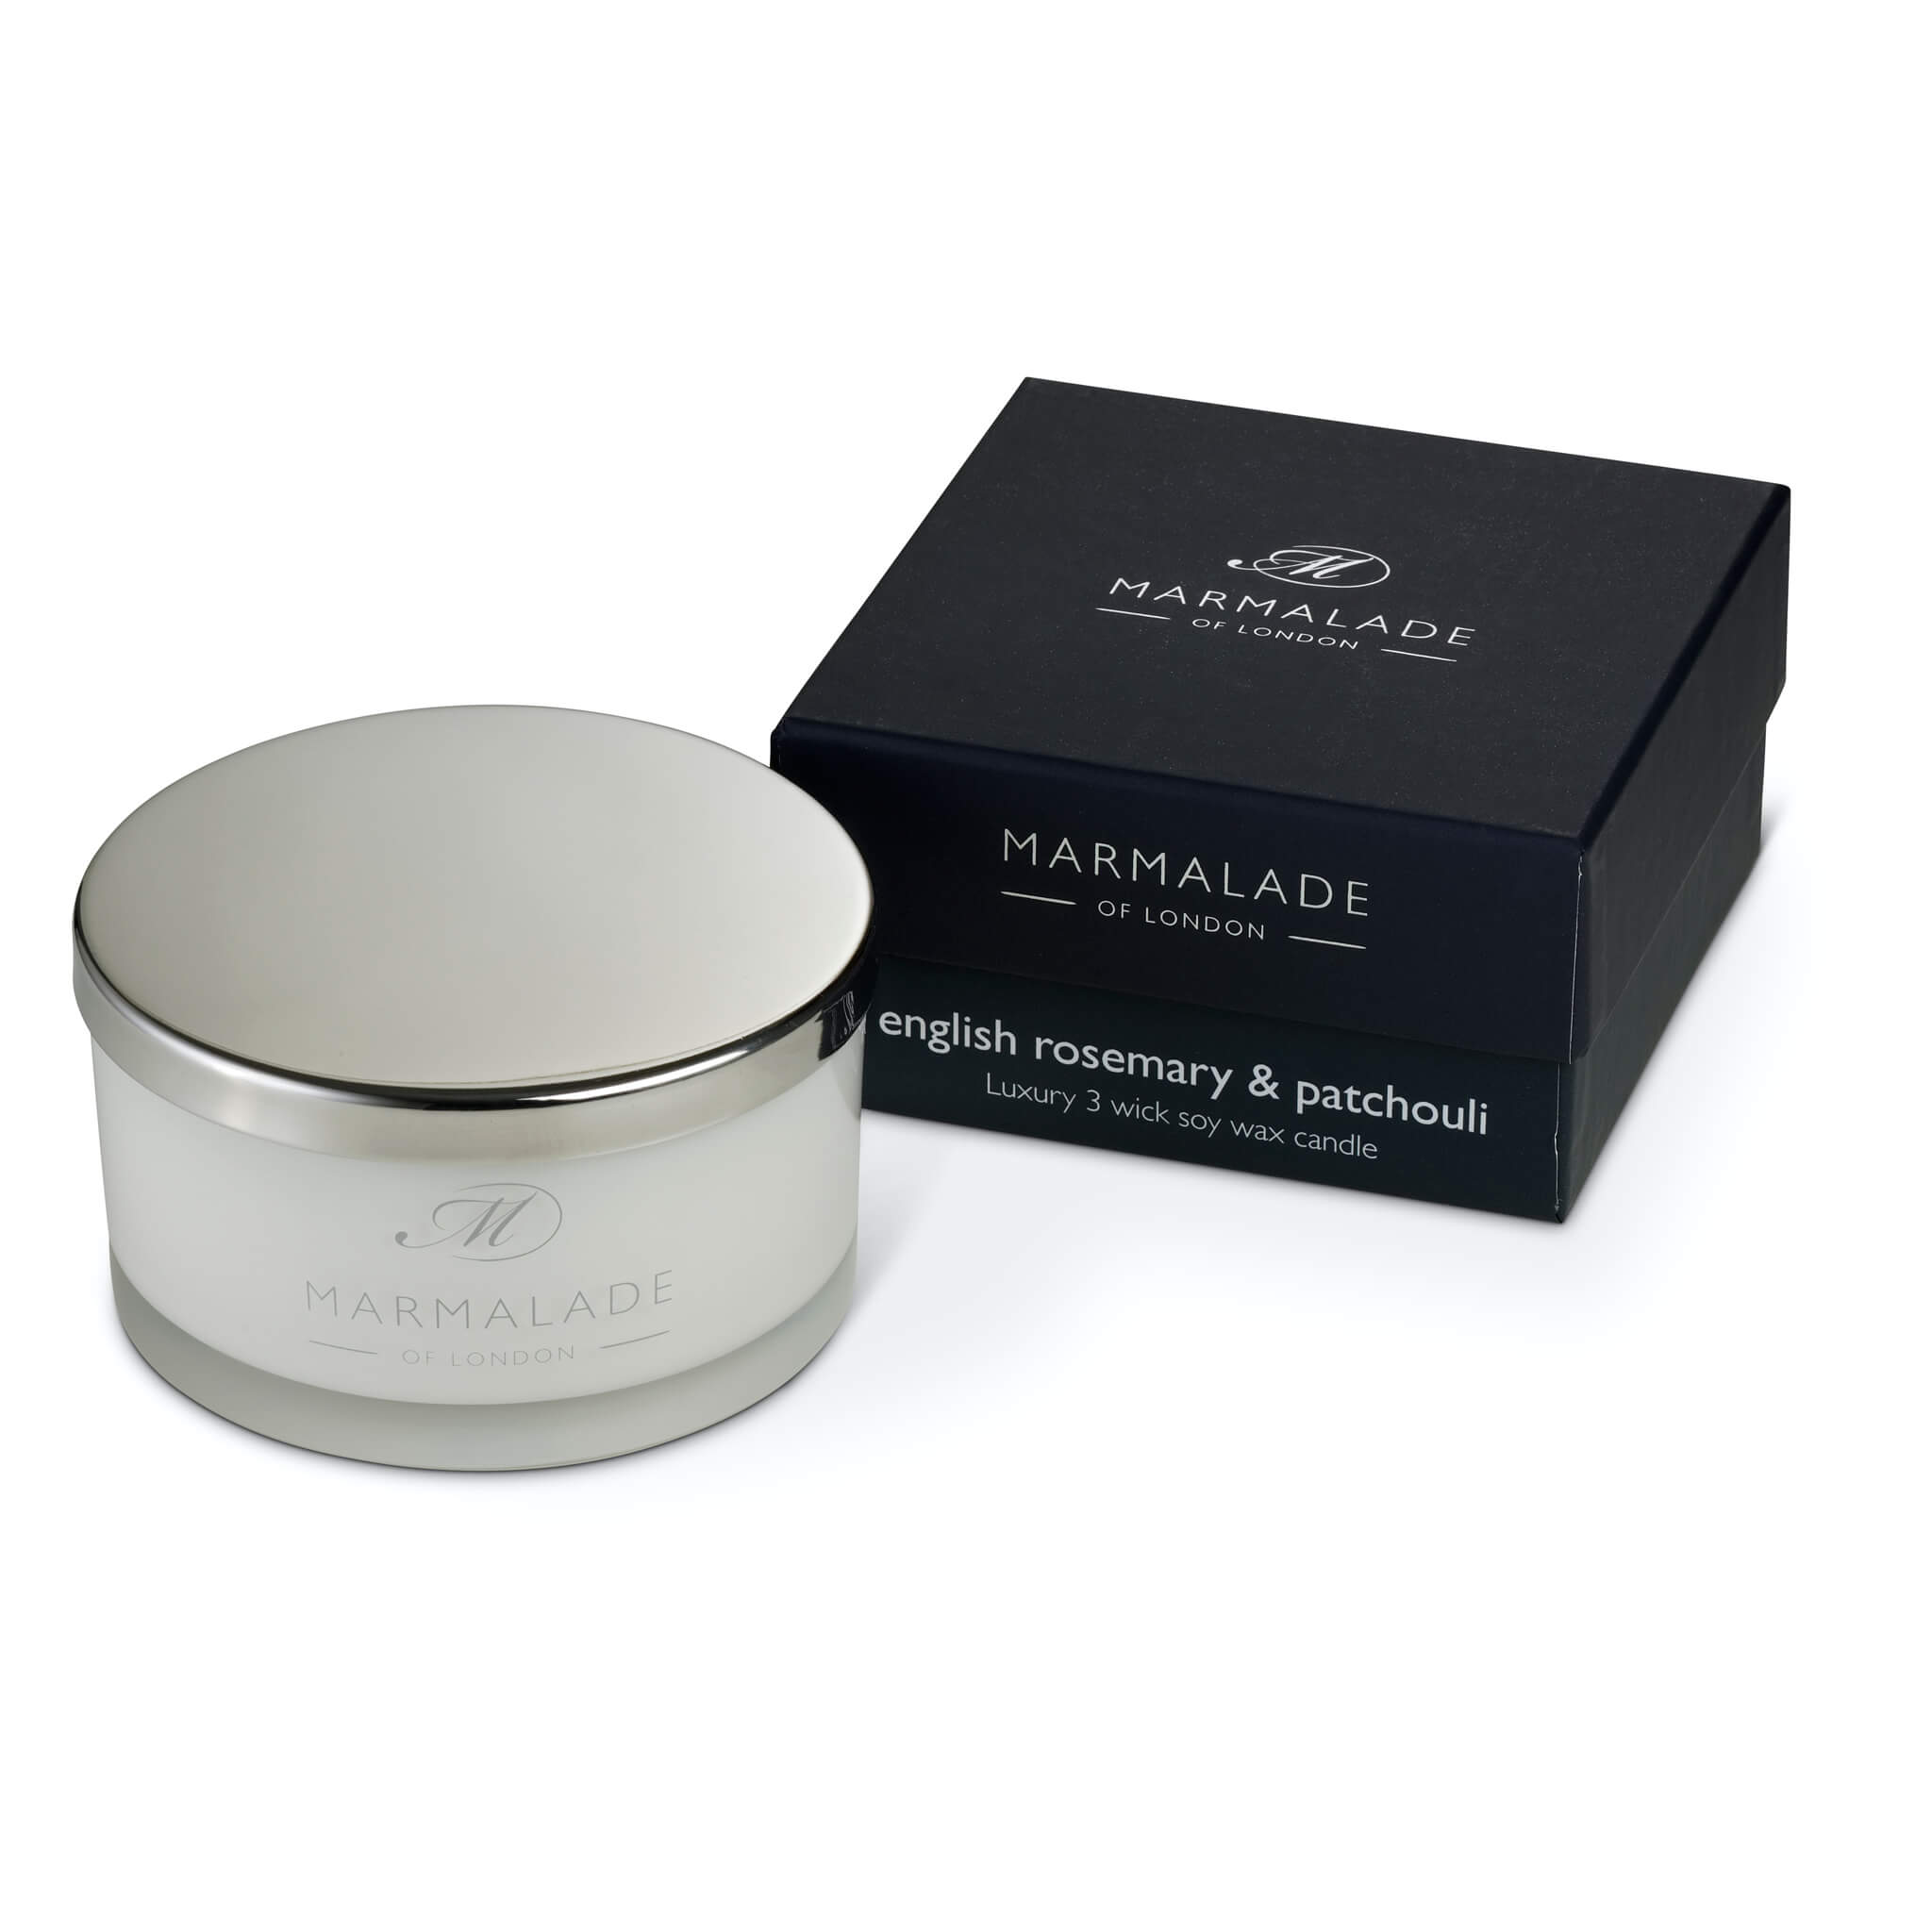 3 wick candle English Rosemary and Patchouli